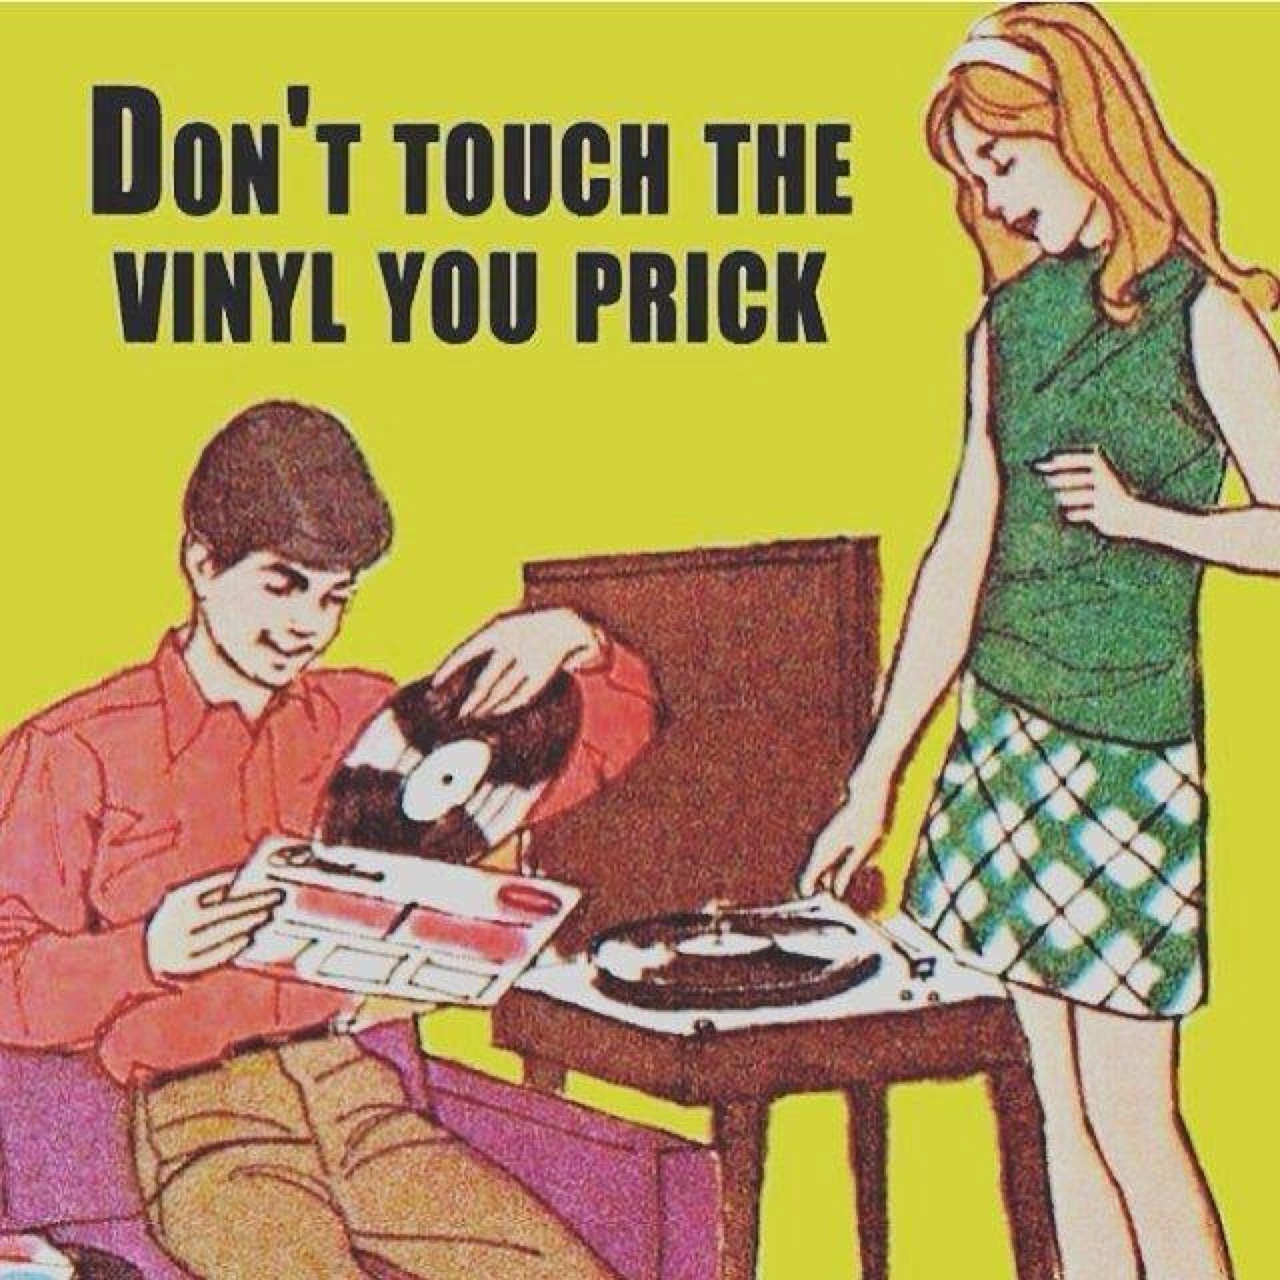 don't touch the vinyl, you prick